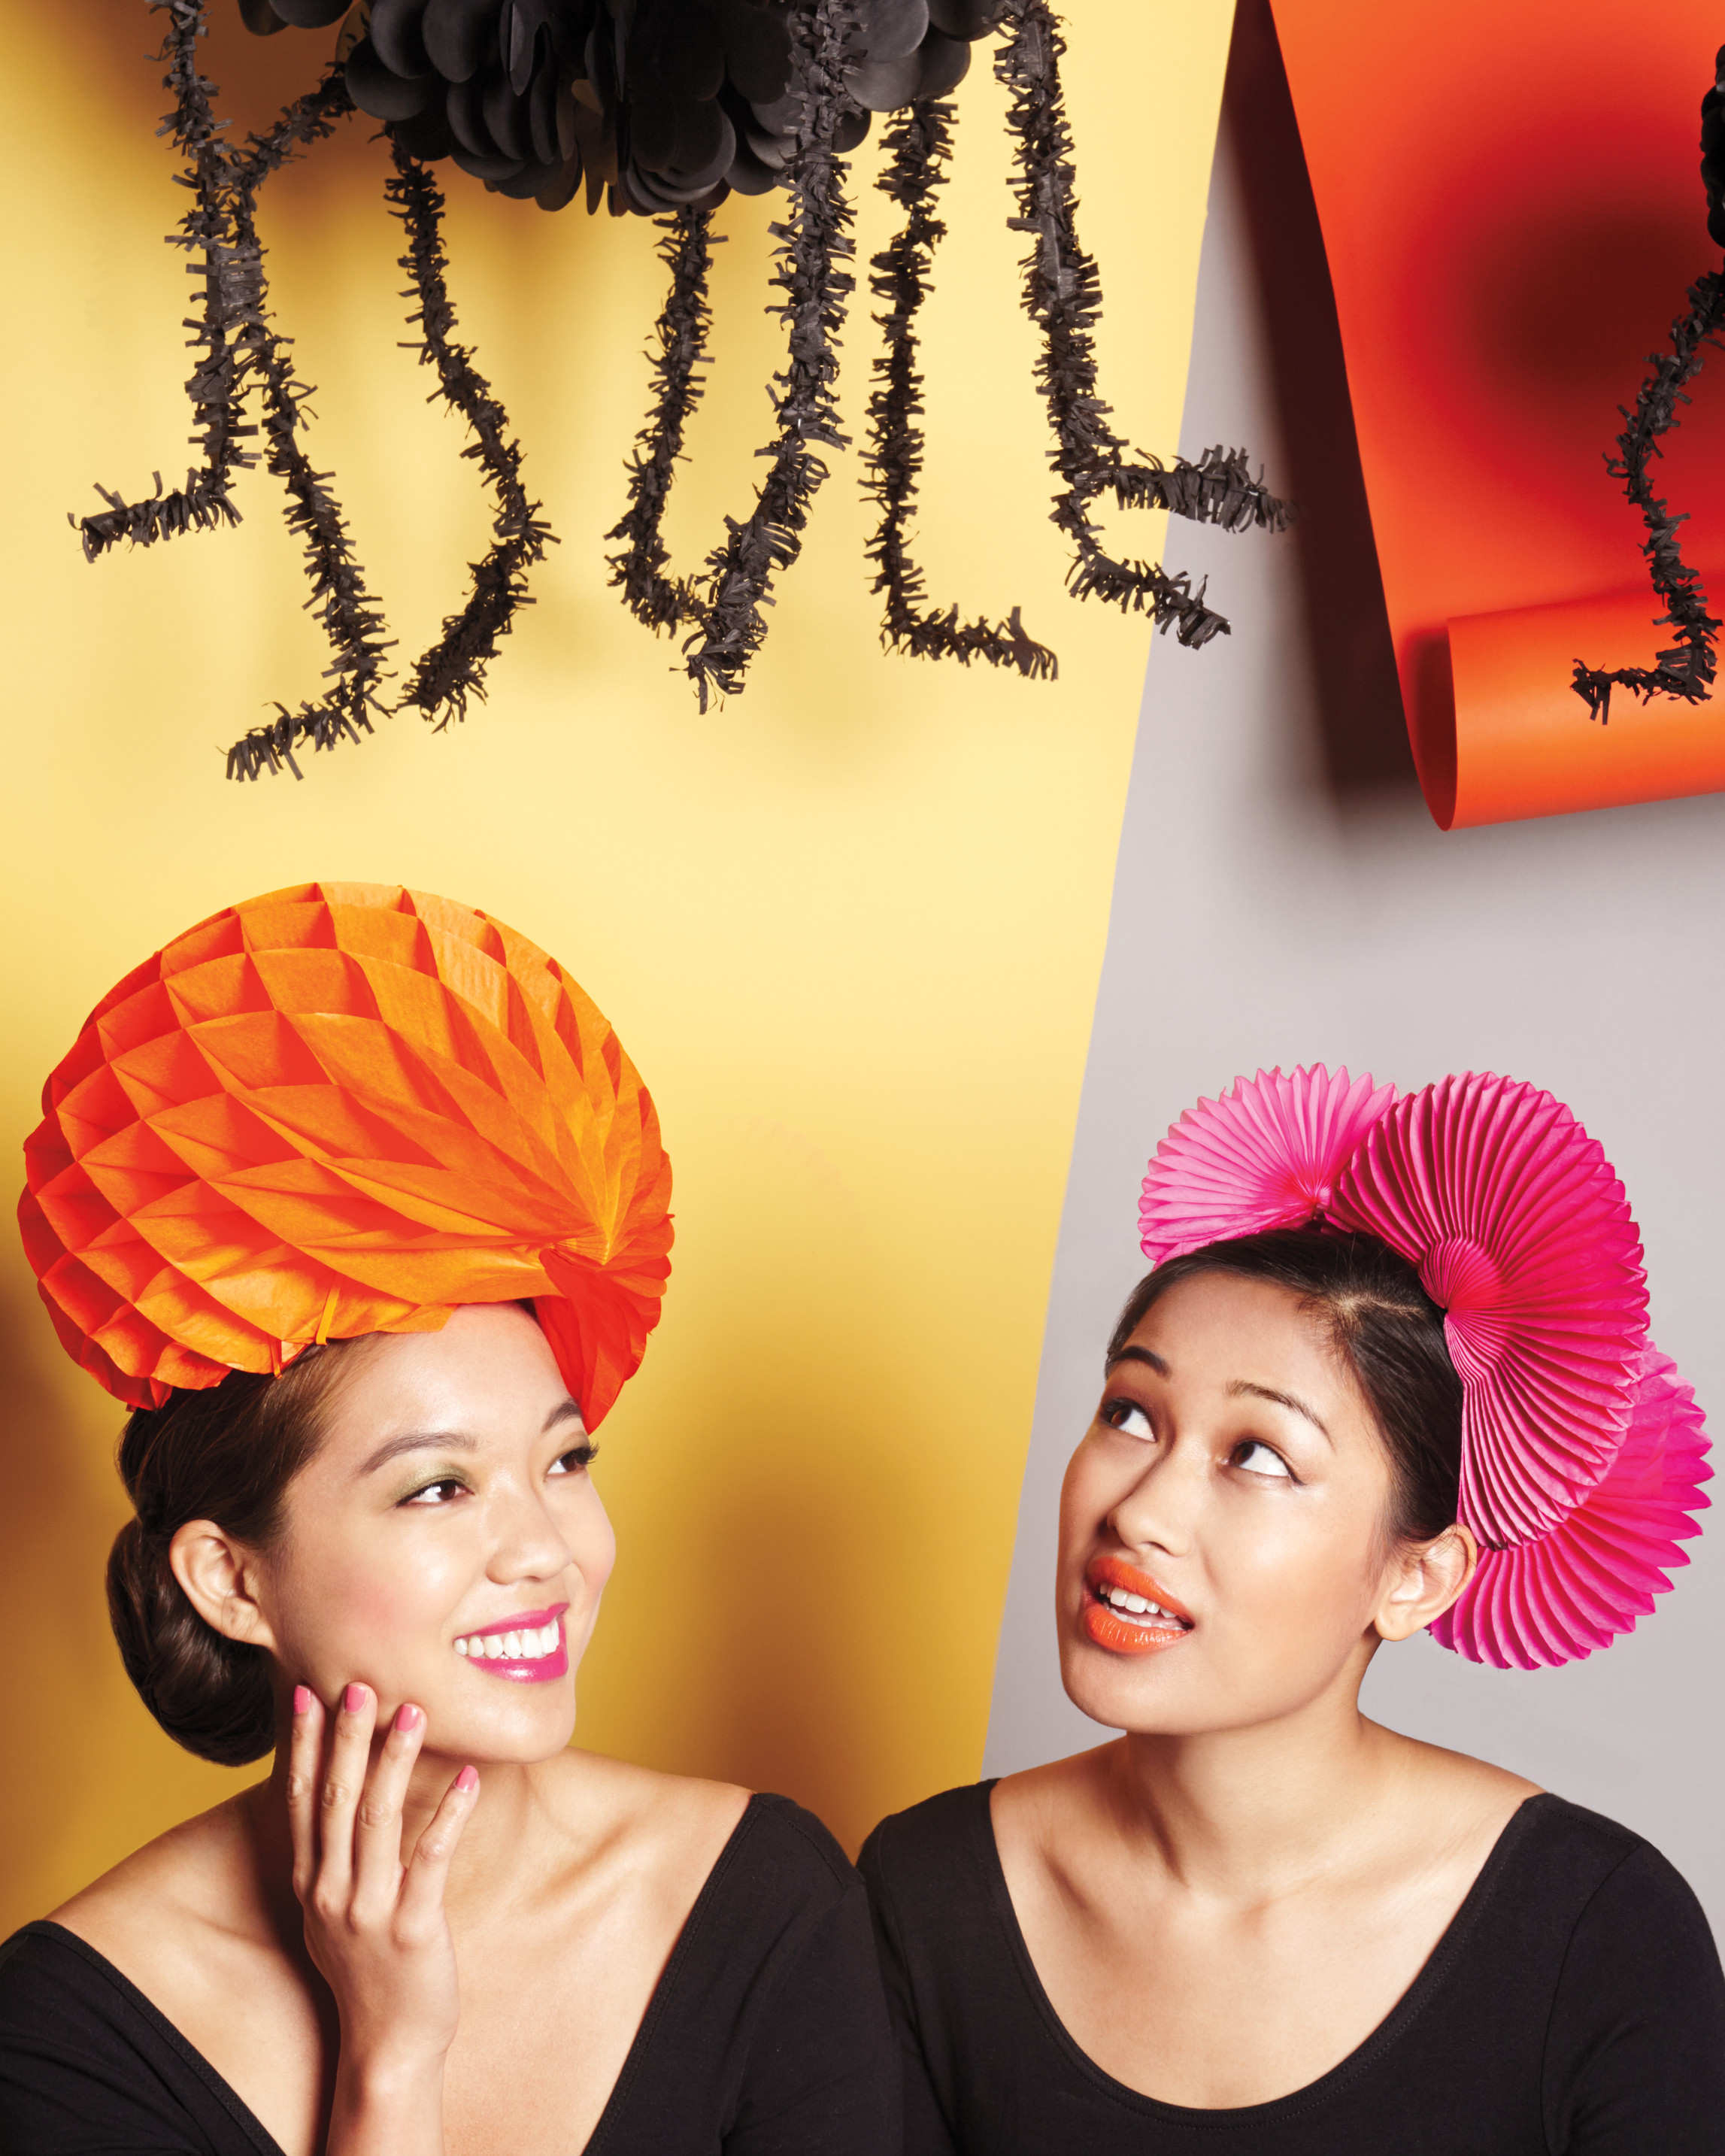 honeycomb and flower fan paper wigs for Halloween